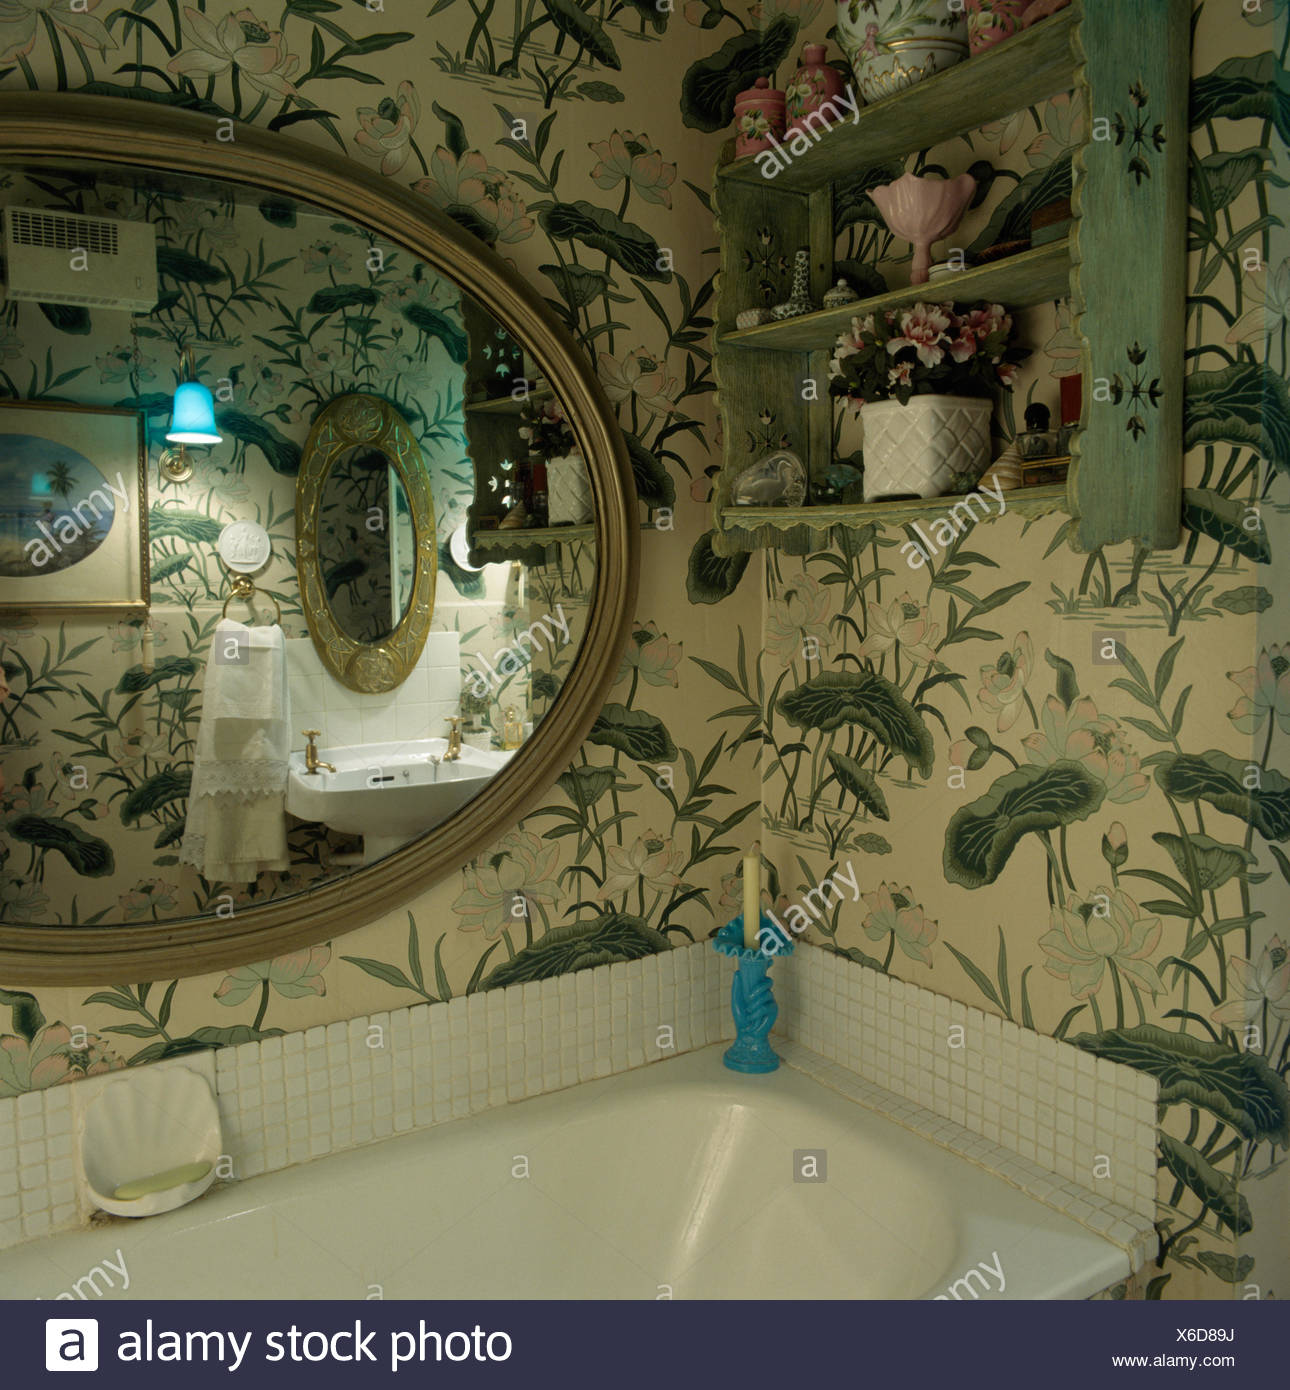 Painted wooden shelves and large oval mirror above the bath in an eighties bathroom with large patterned foliage wallpaper - Stock Image